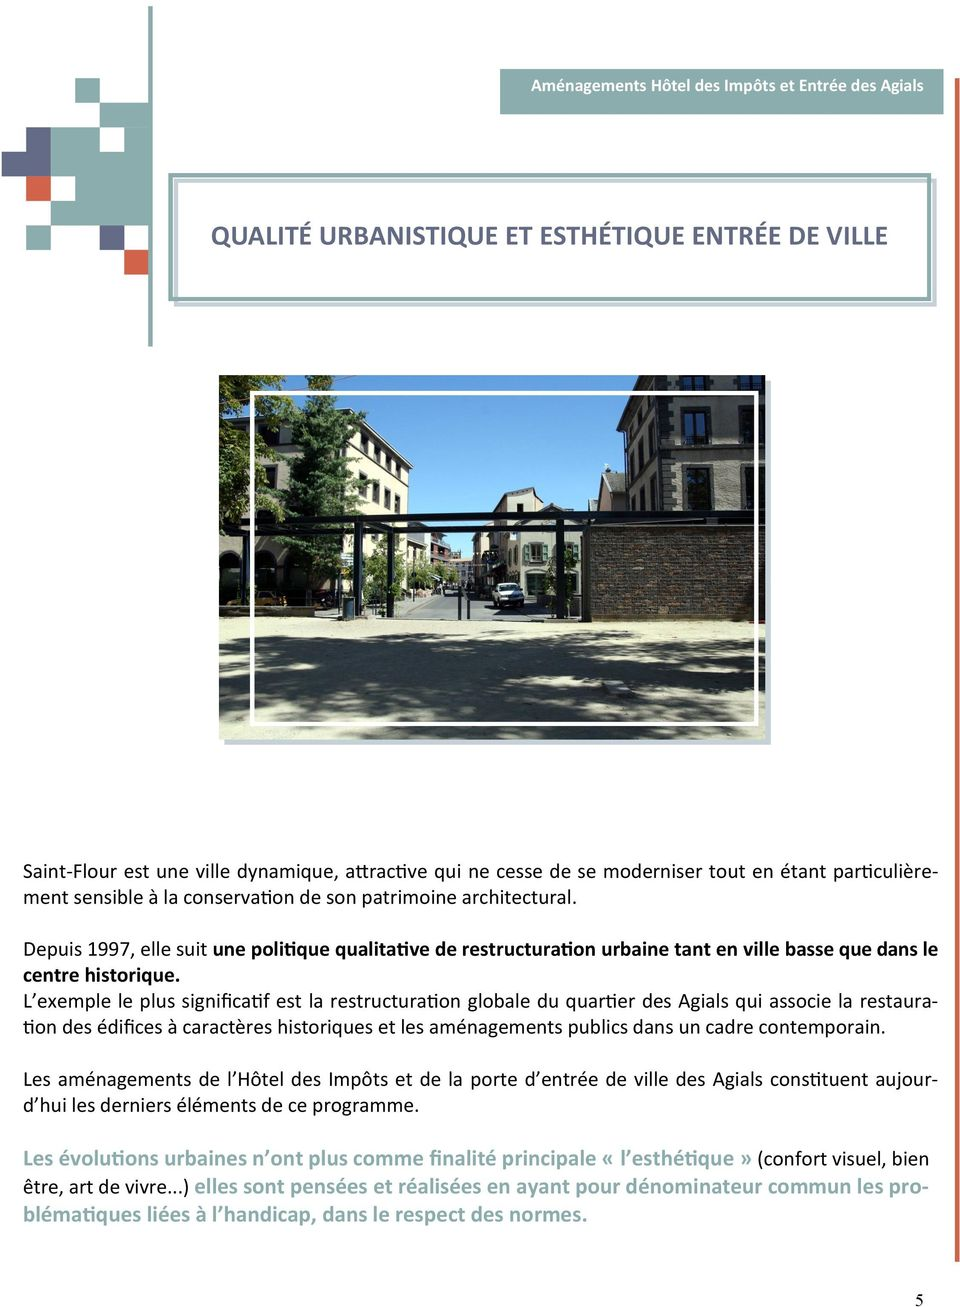 L exemple le plus significatif est la restructuration globale du quartier des Agials qui associe la restauration des édifices à caractères historiques et les aménagements publics dans un cadre